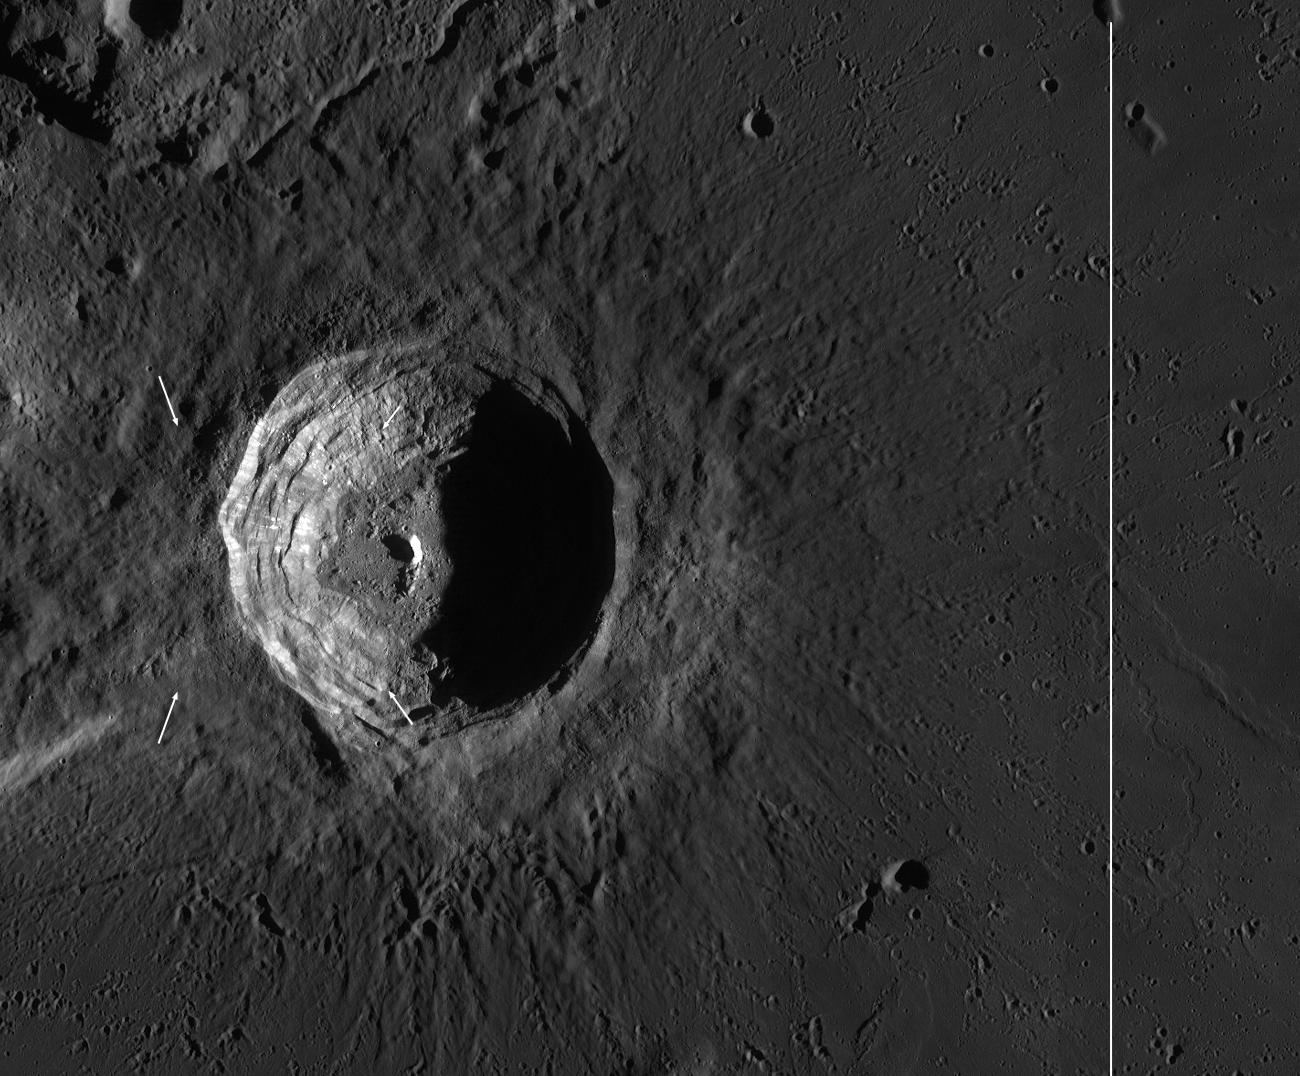 Dawn View of Aristarchus Crater